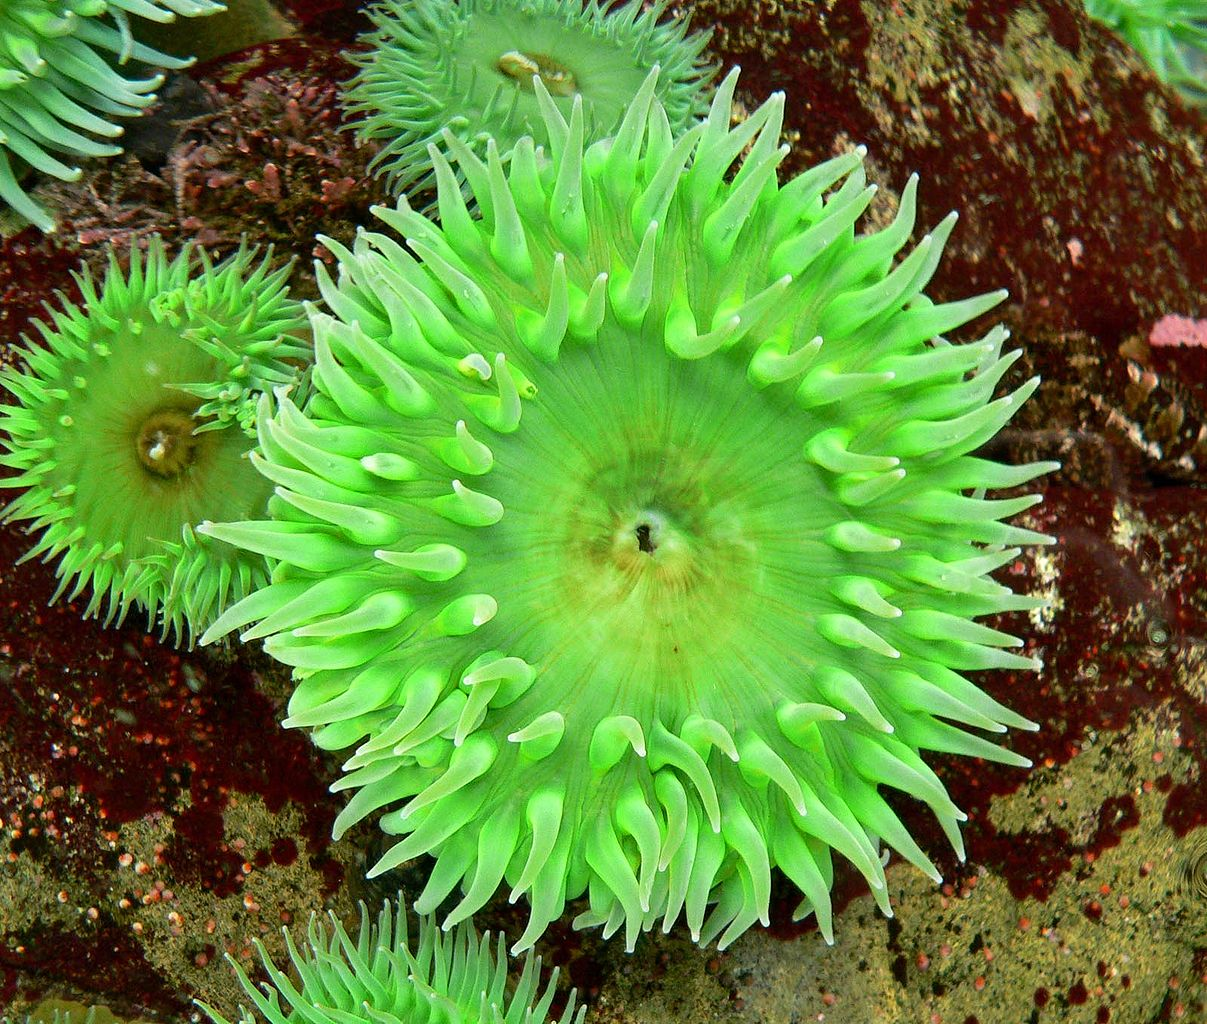 Anthopleura xanthogrammica (giant green anemone)